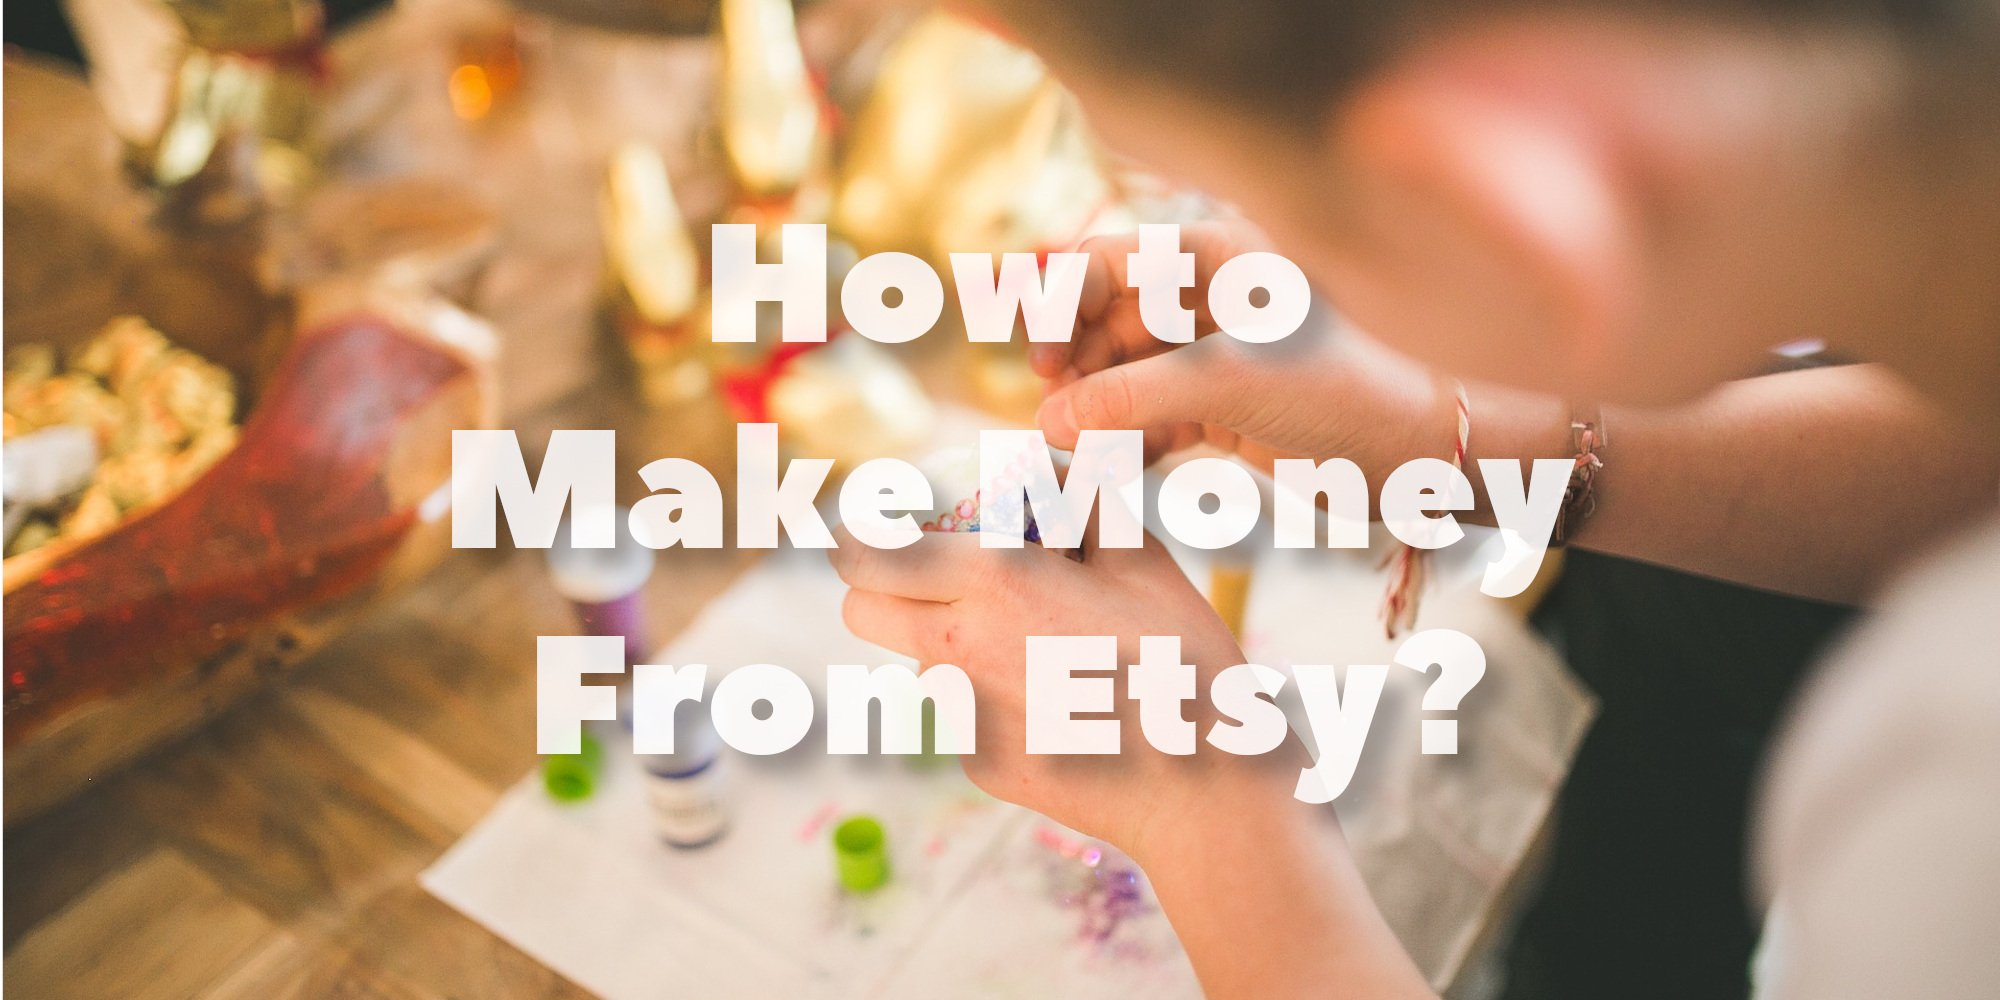 How to Make Money From Etsy?